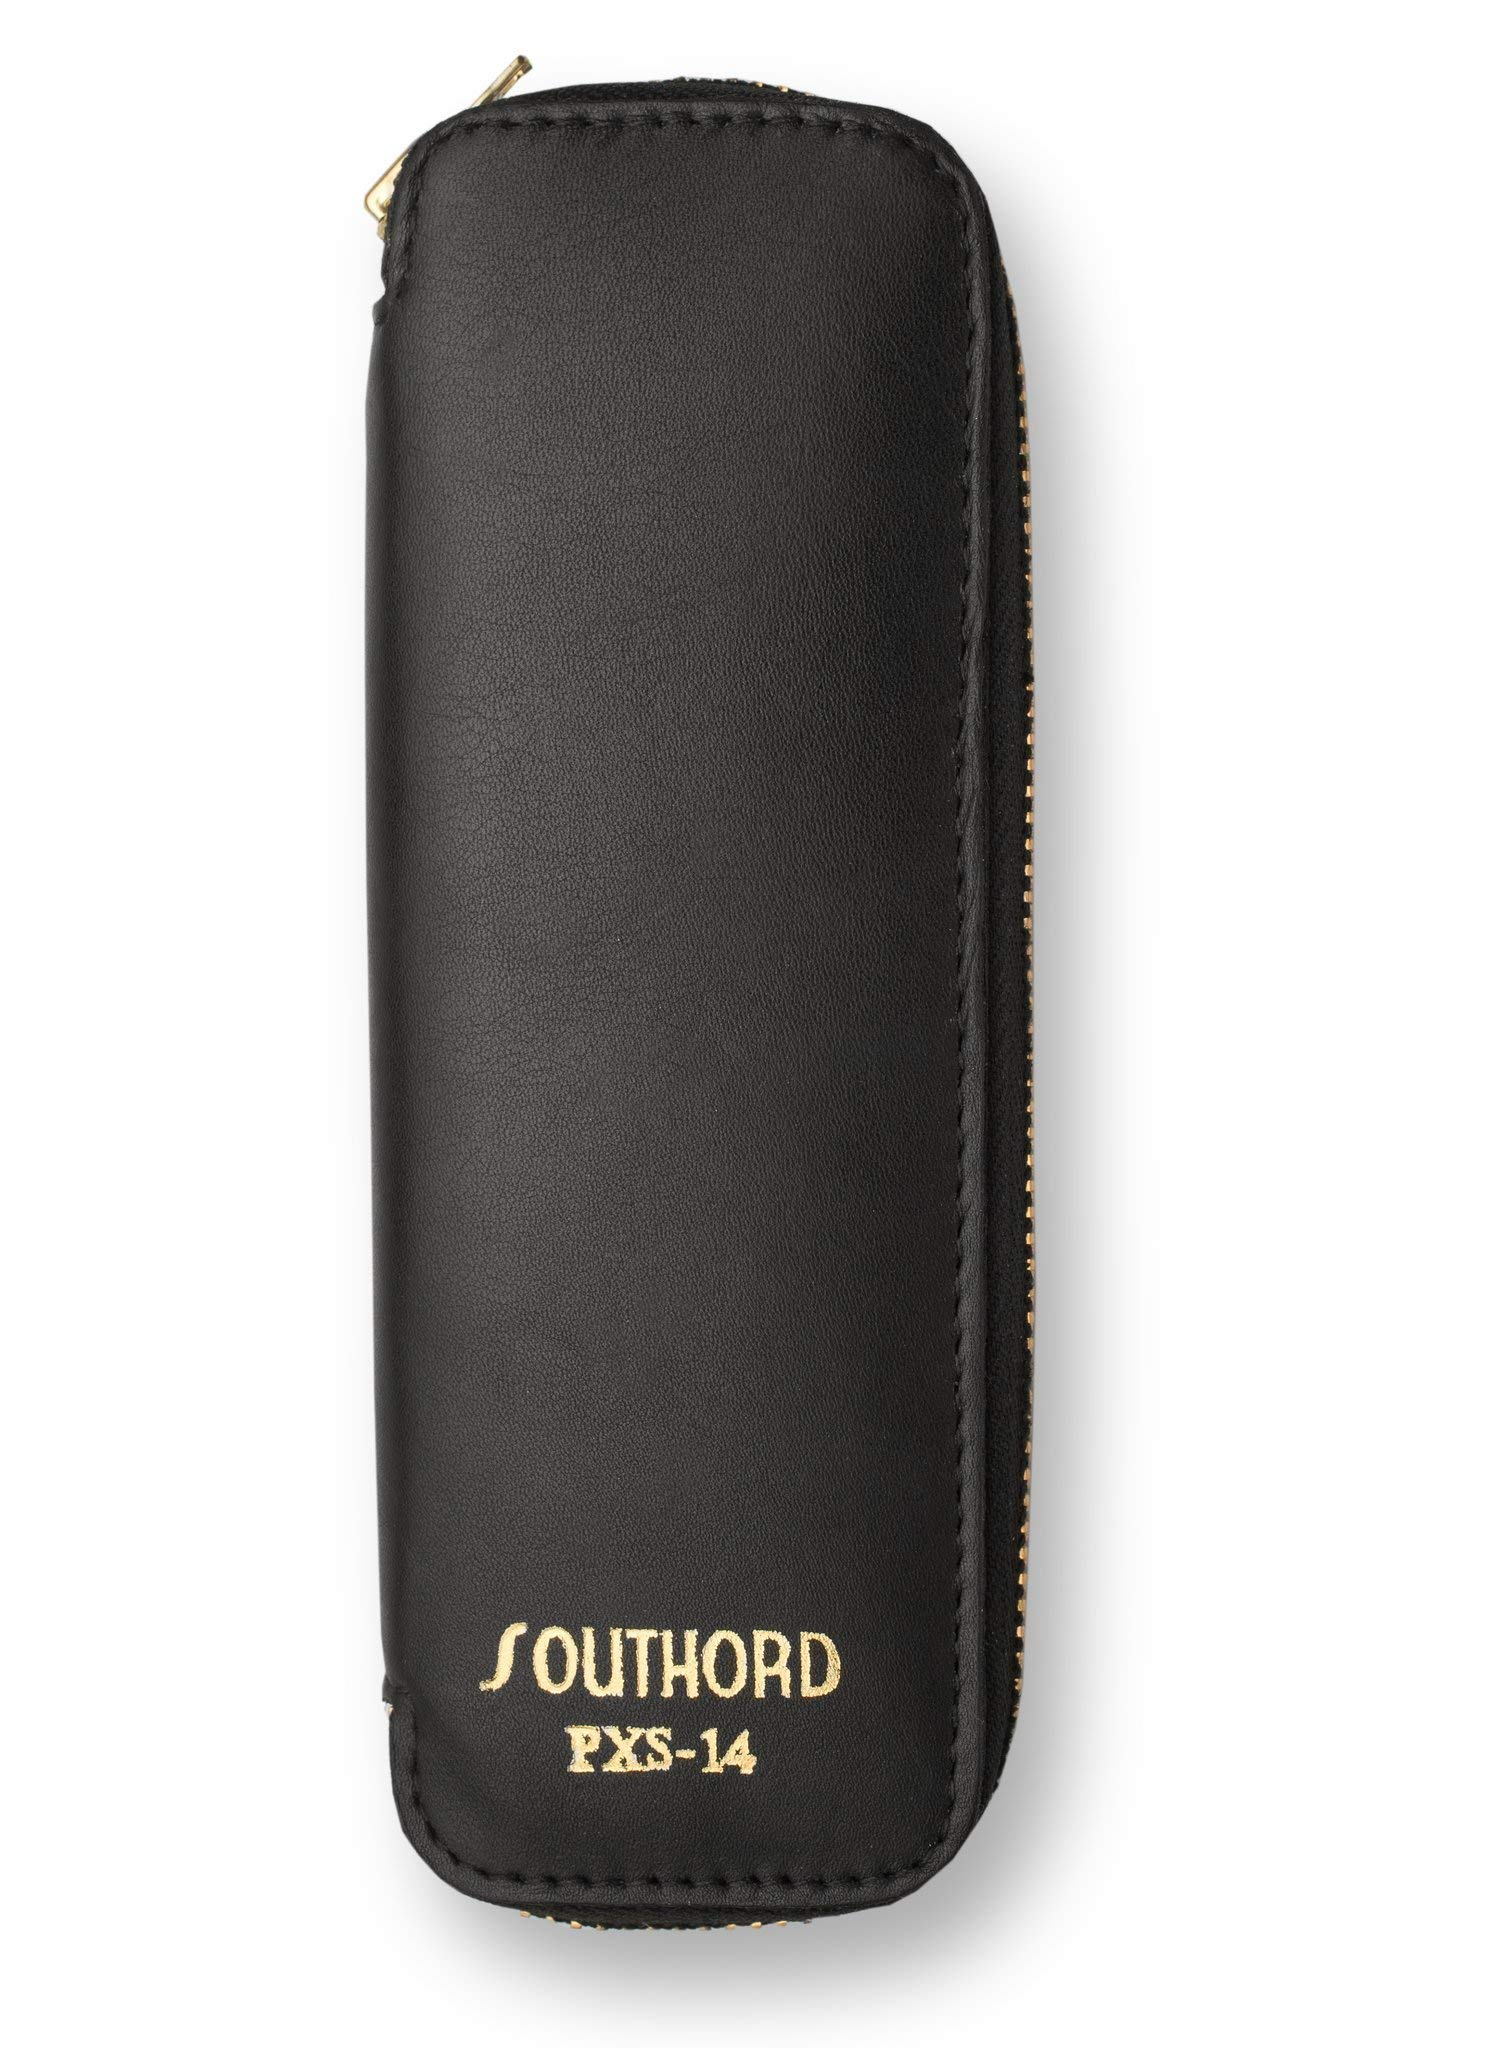 Southord PXS-14 Lock Set Leather Tool Case by SouthOrd (Image #1)